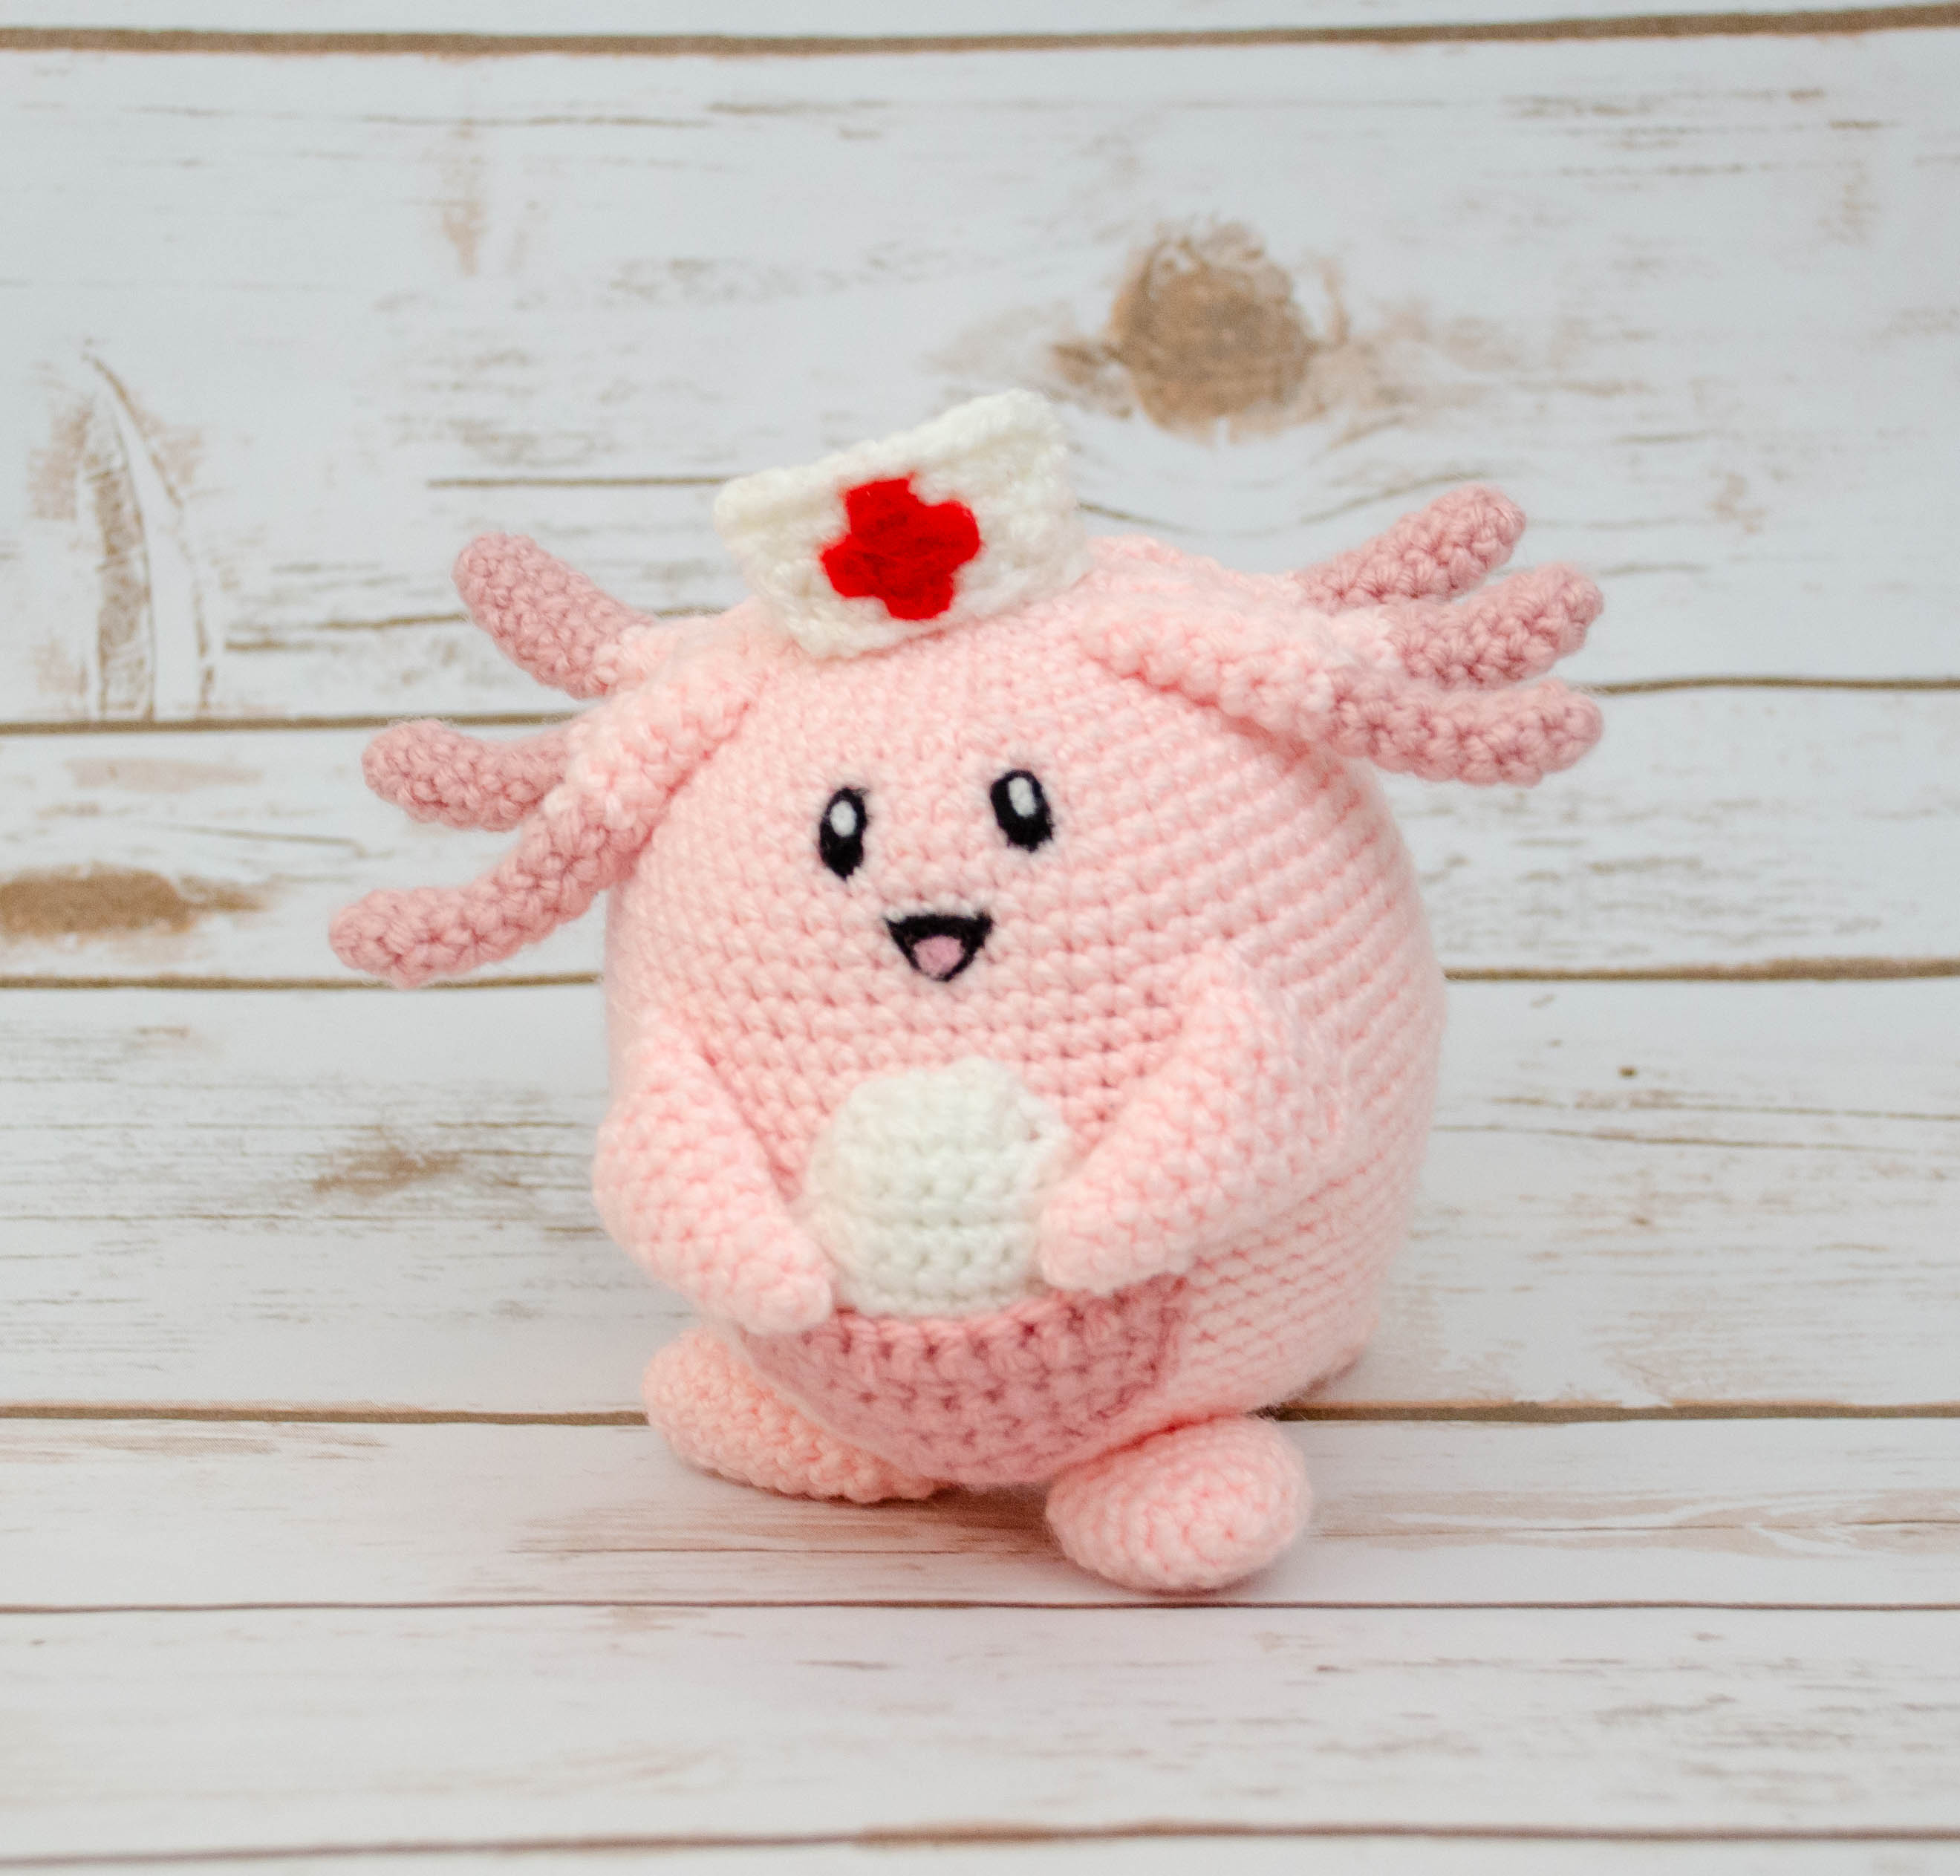 A free pattern for how to make a crochet amigurumi nurse with ... | 2526x2639